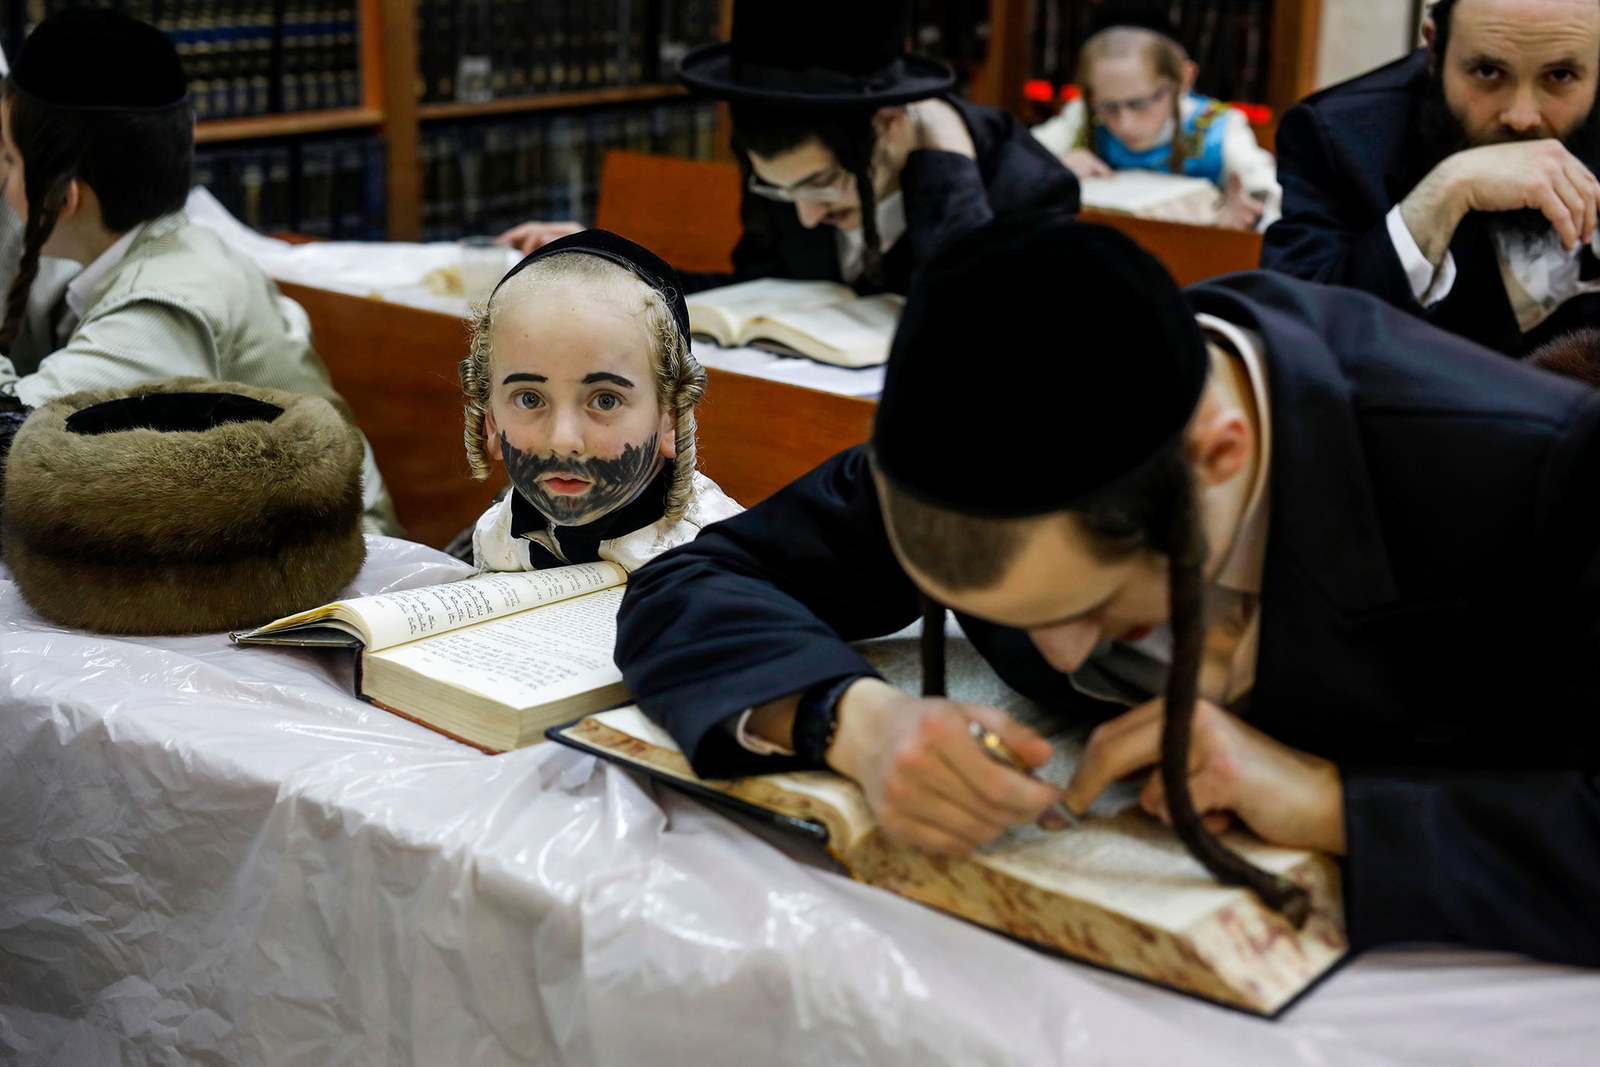 Ultra-Orthodox Jews study during the feast of Purim at a synagogue in Bnei Brak, Israel, on March 20.